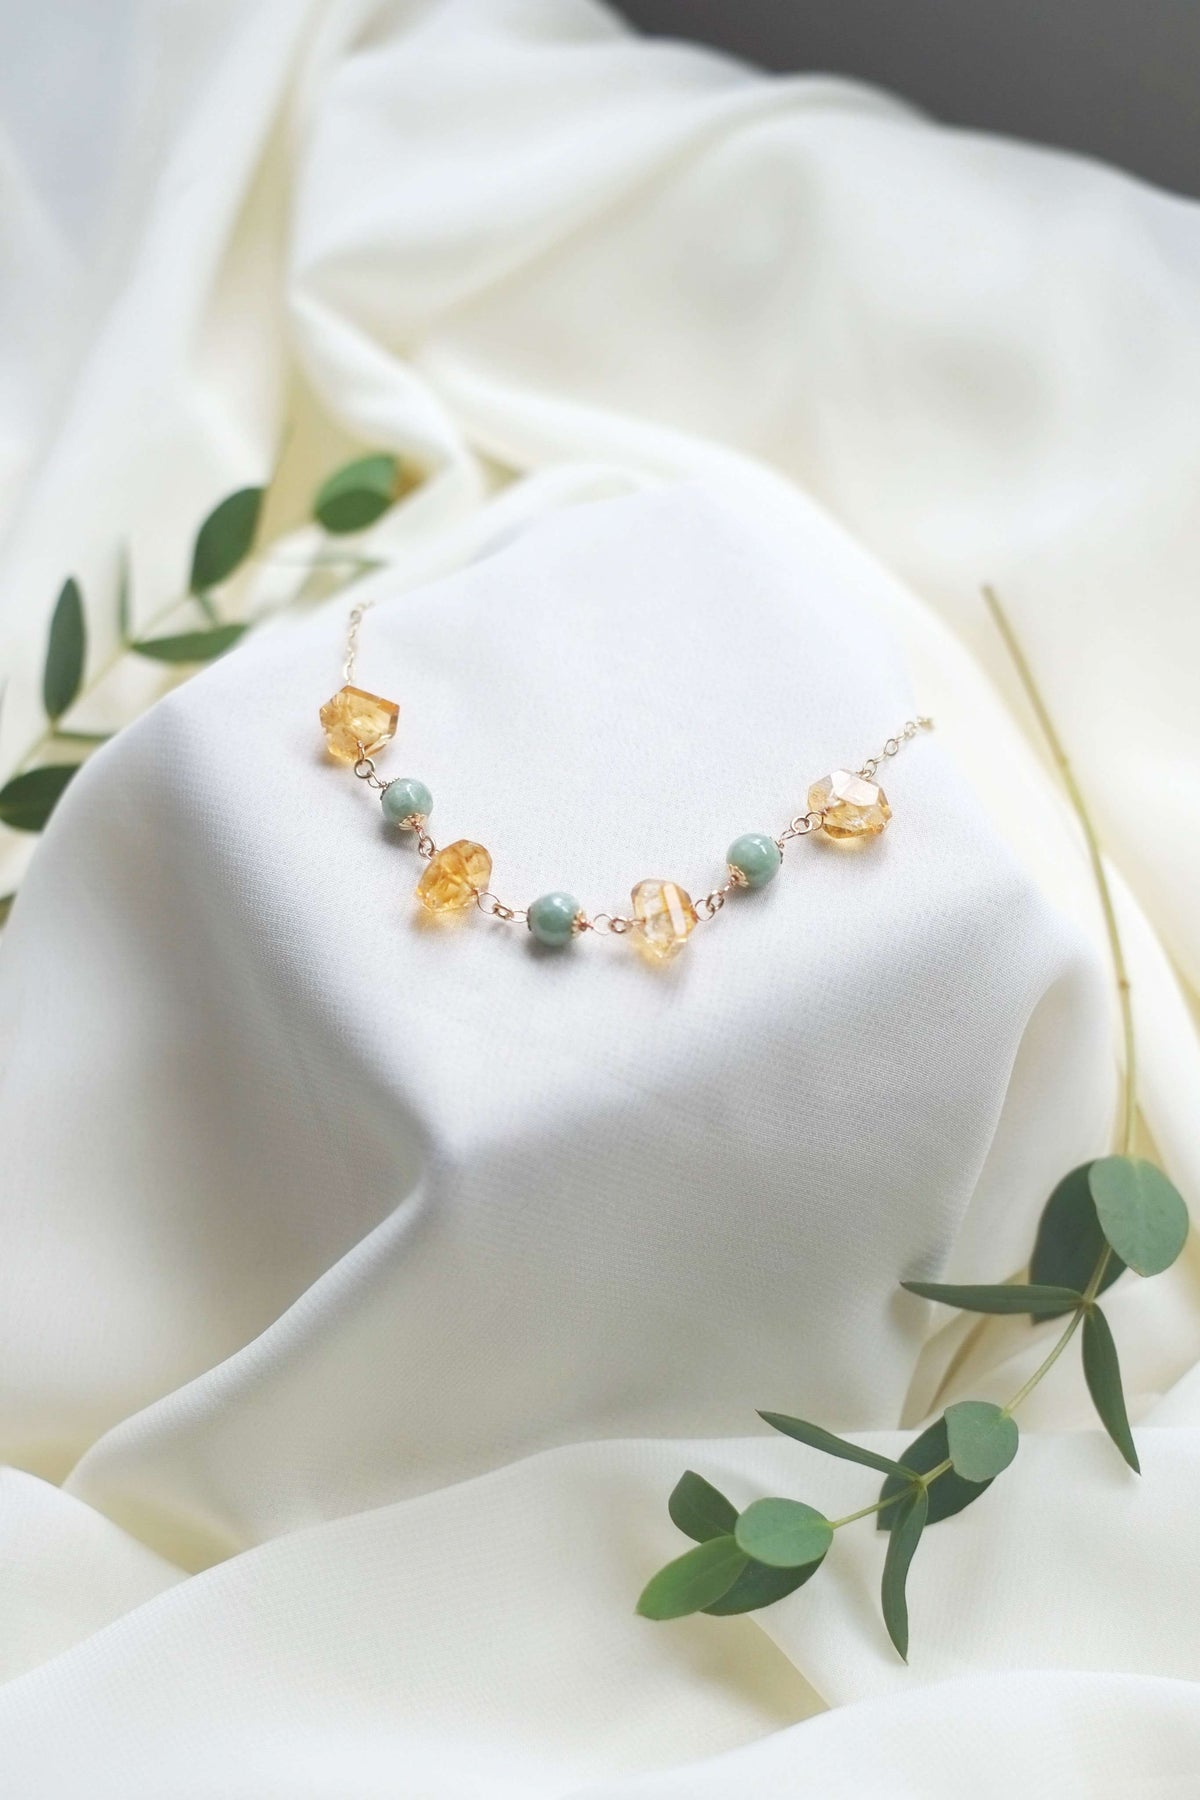 Jadeite and Citrine Necklace - hello flowers!